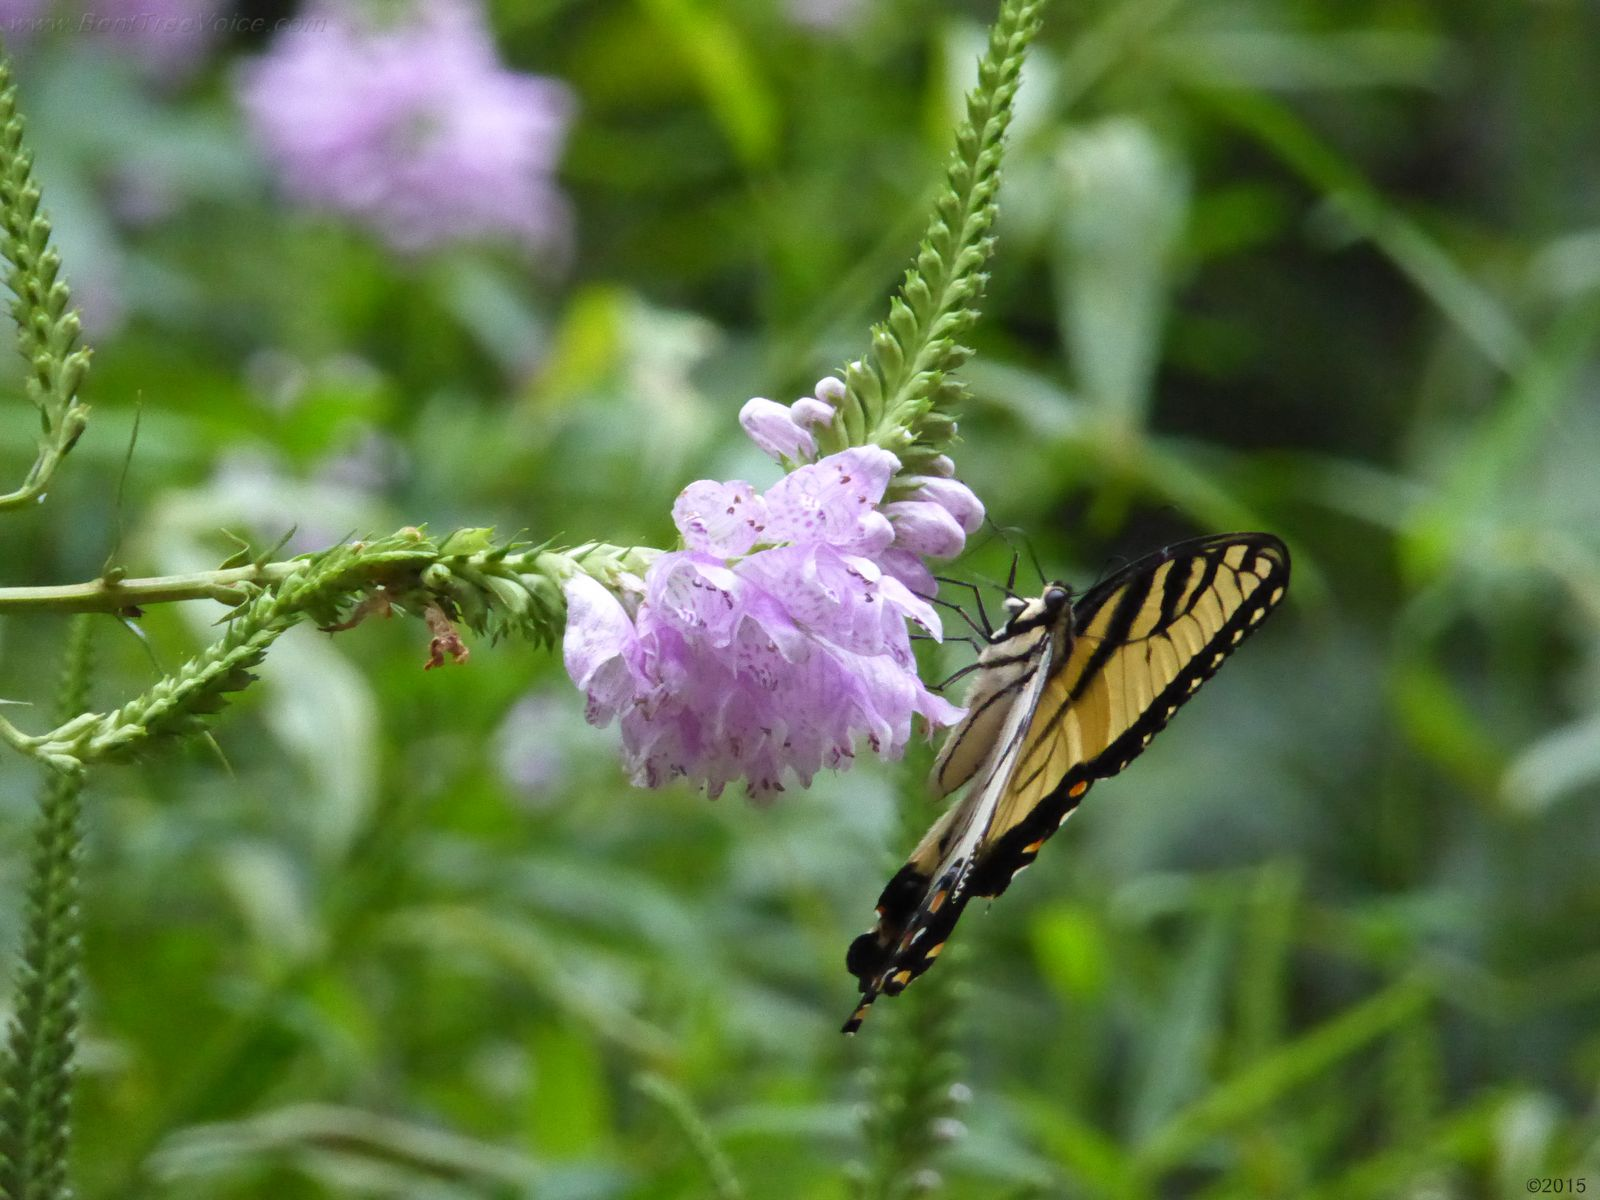 August 16, 2015 - Obedient plant blooming in Bent Tree